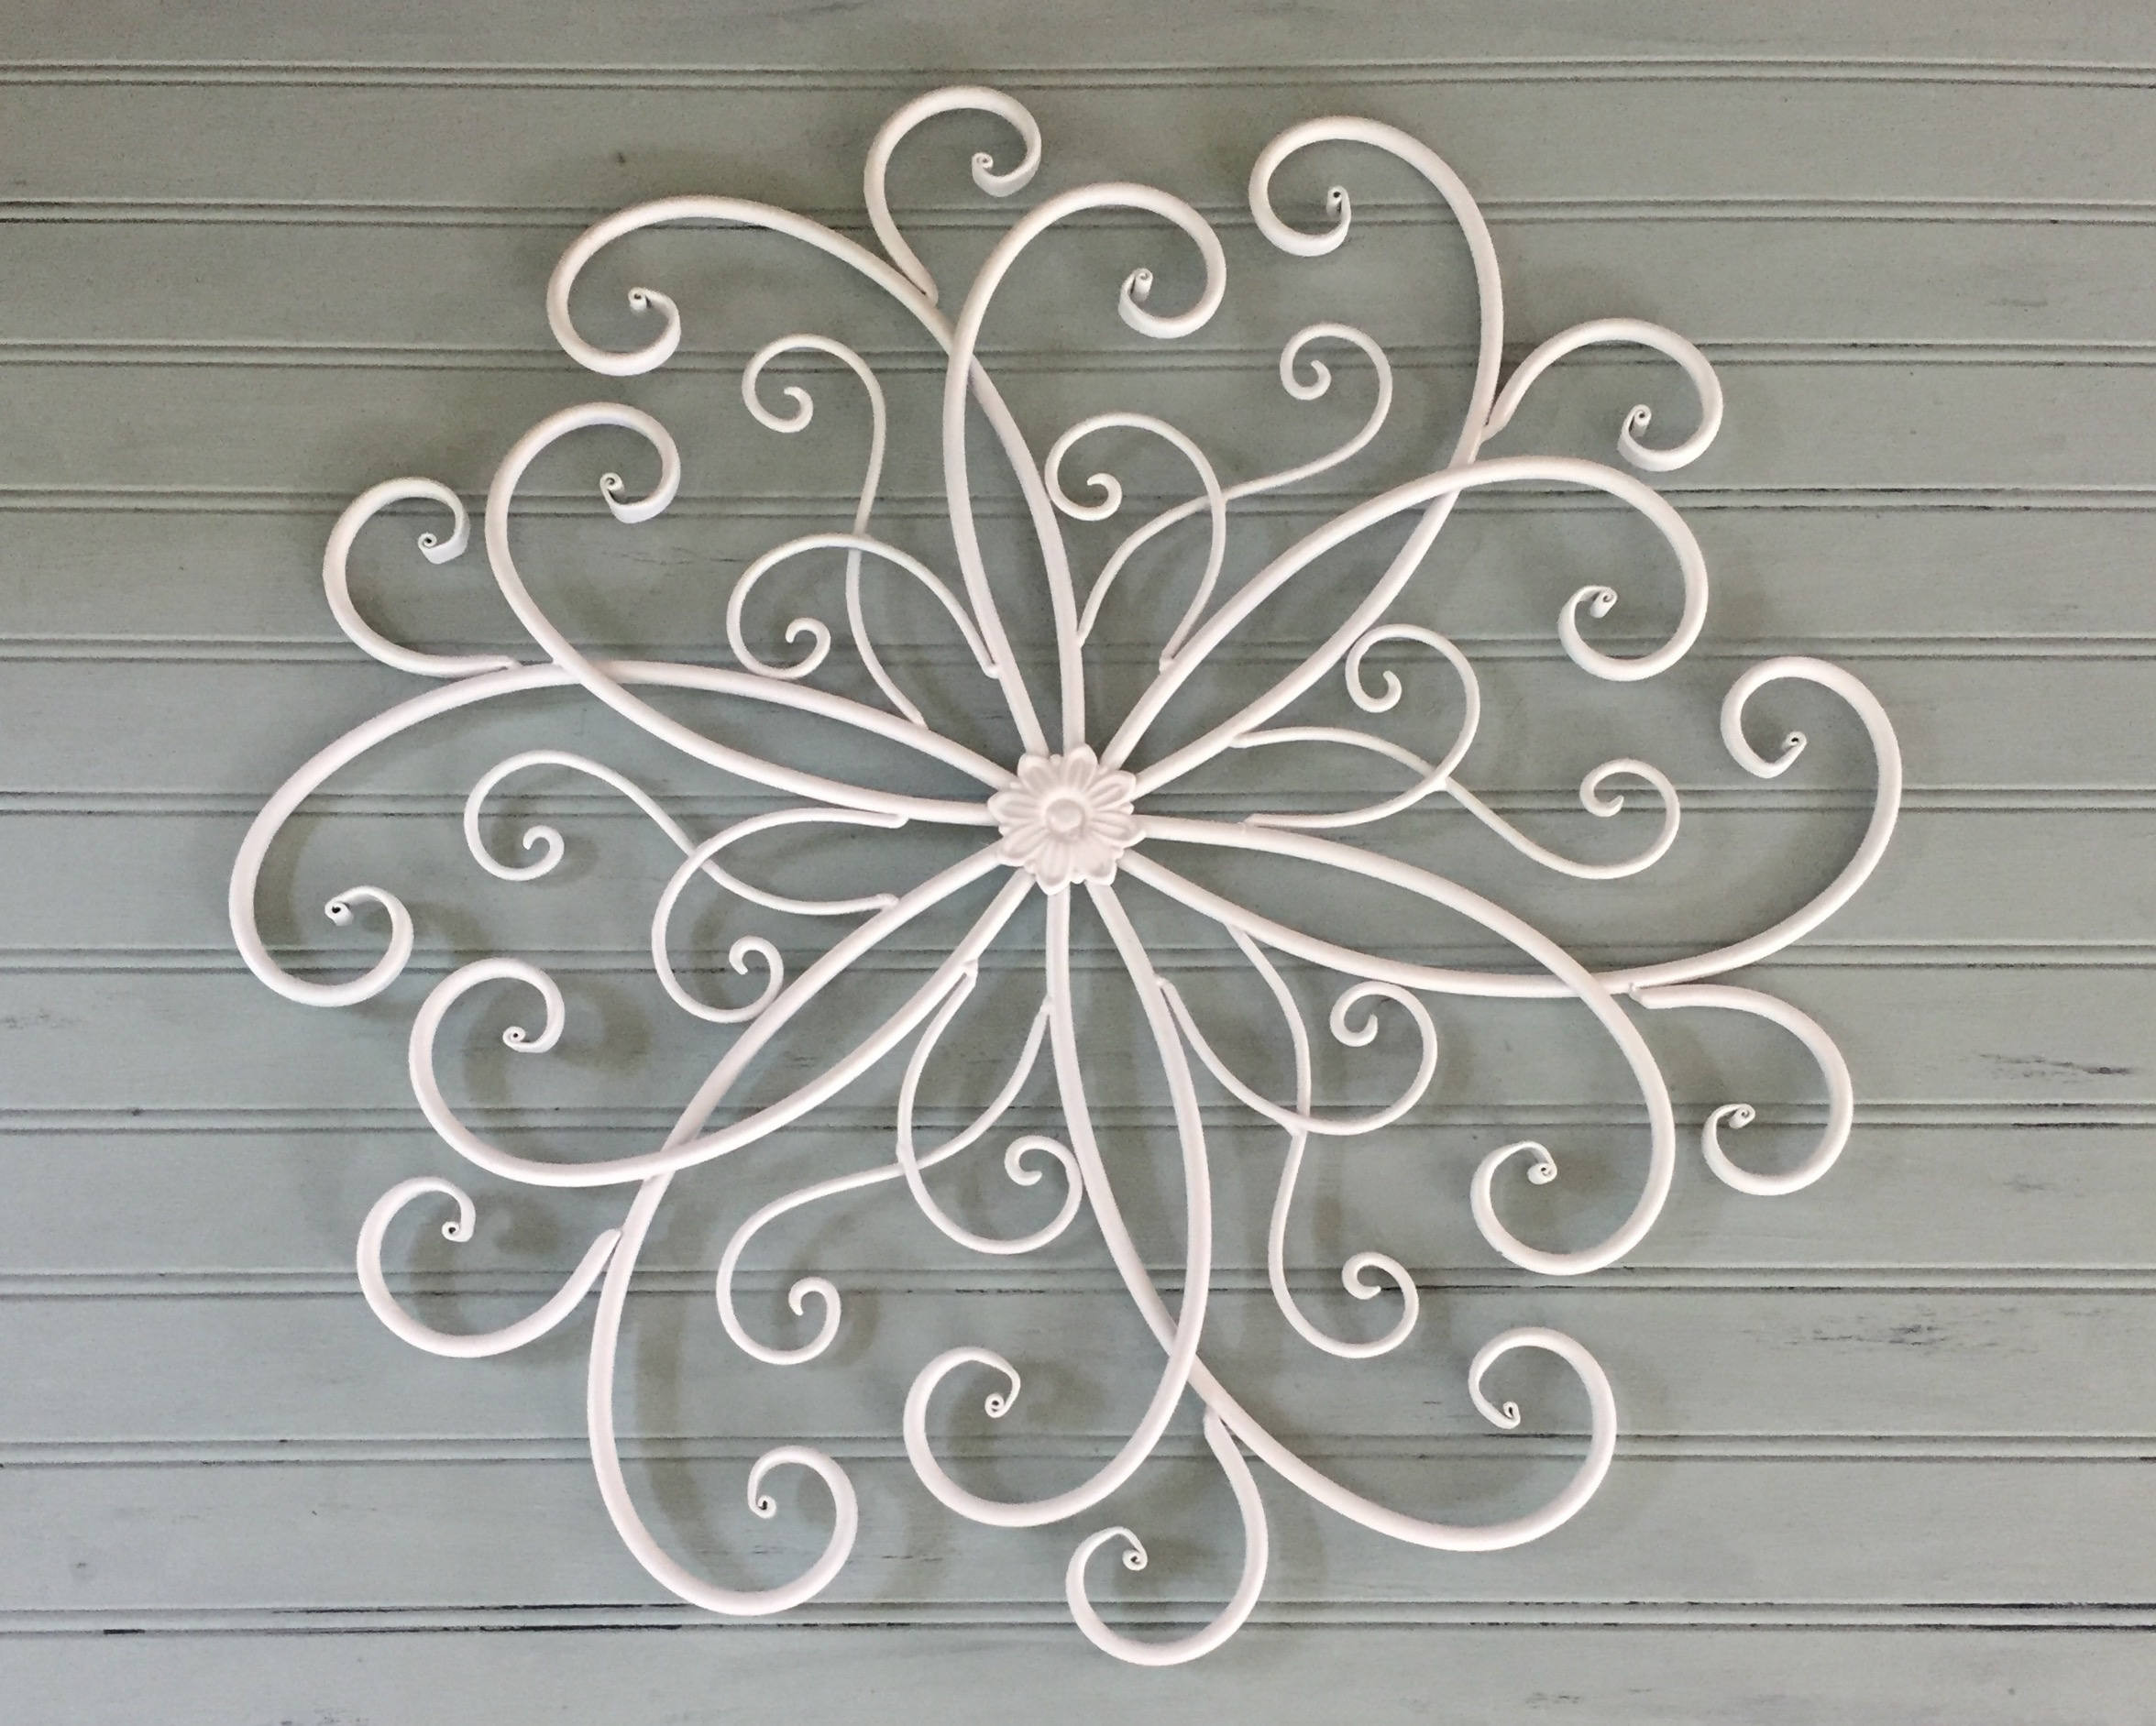 Best ideas about Large Metal Wall Art . Save or Pin White Metal Wall Hanging Metal Wall Decor Decorative Now.